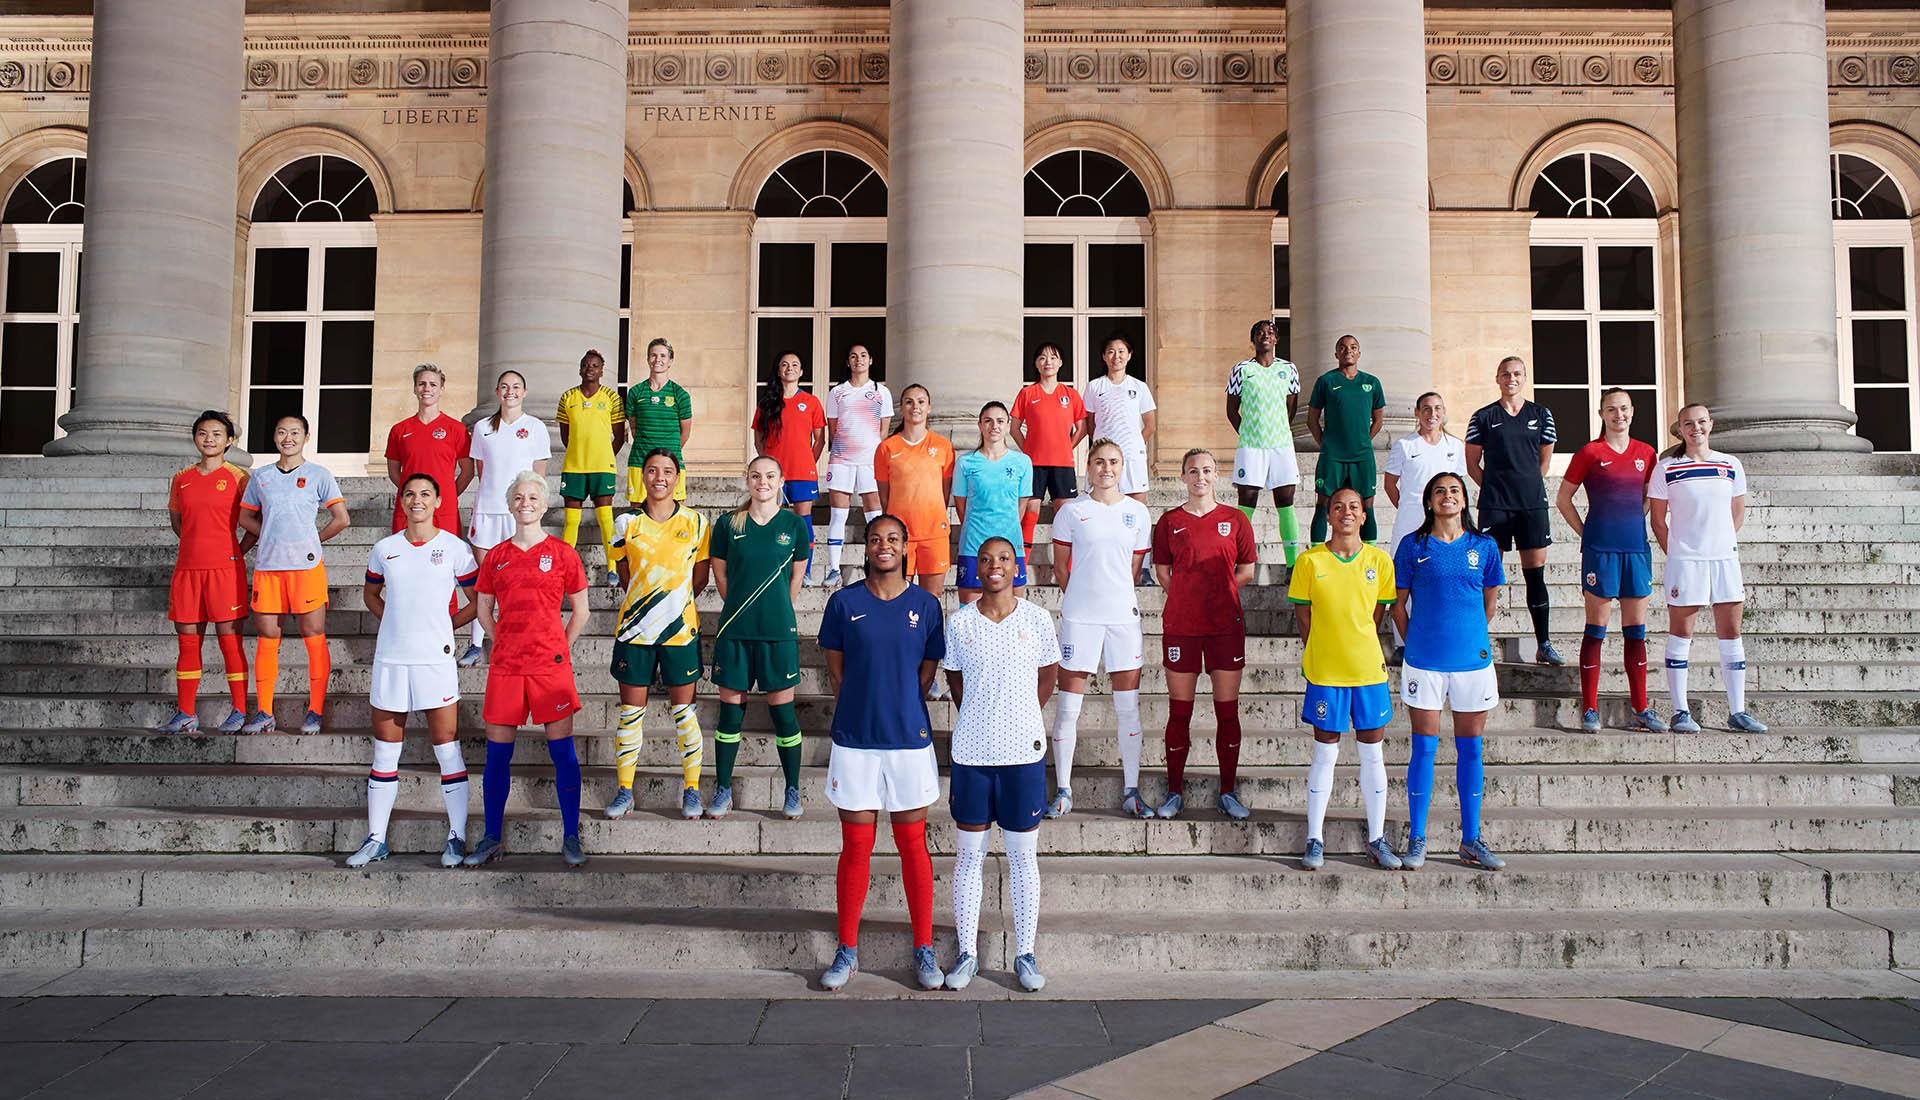 c7b28dabf75 Nike Unveil International Kits for 14 Different Countries in Paris -  SoccerBible.